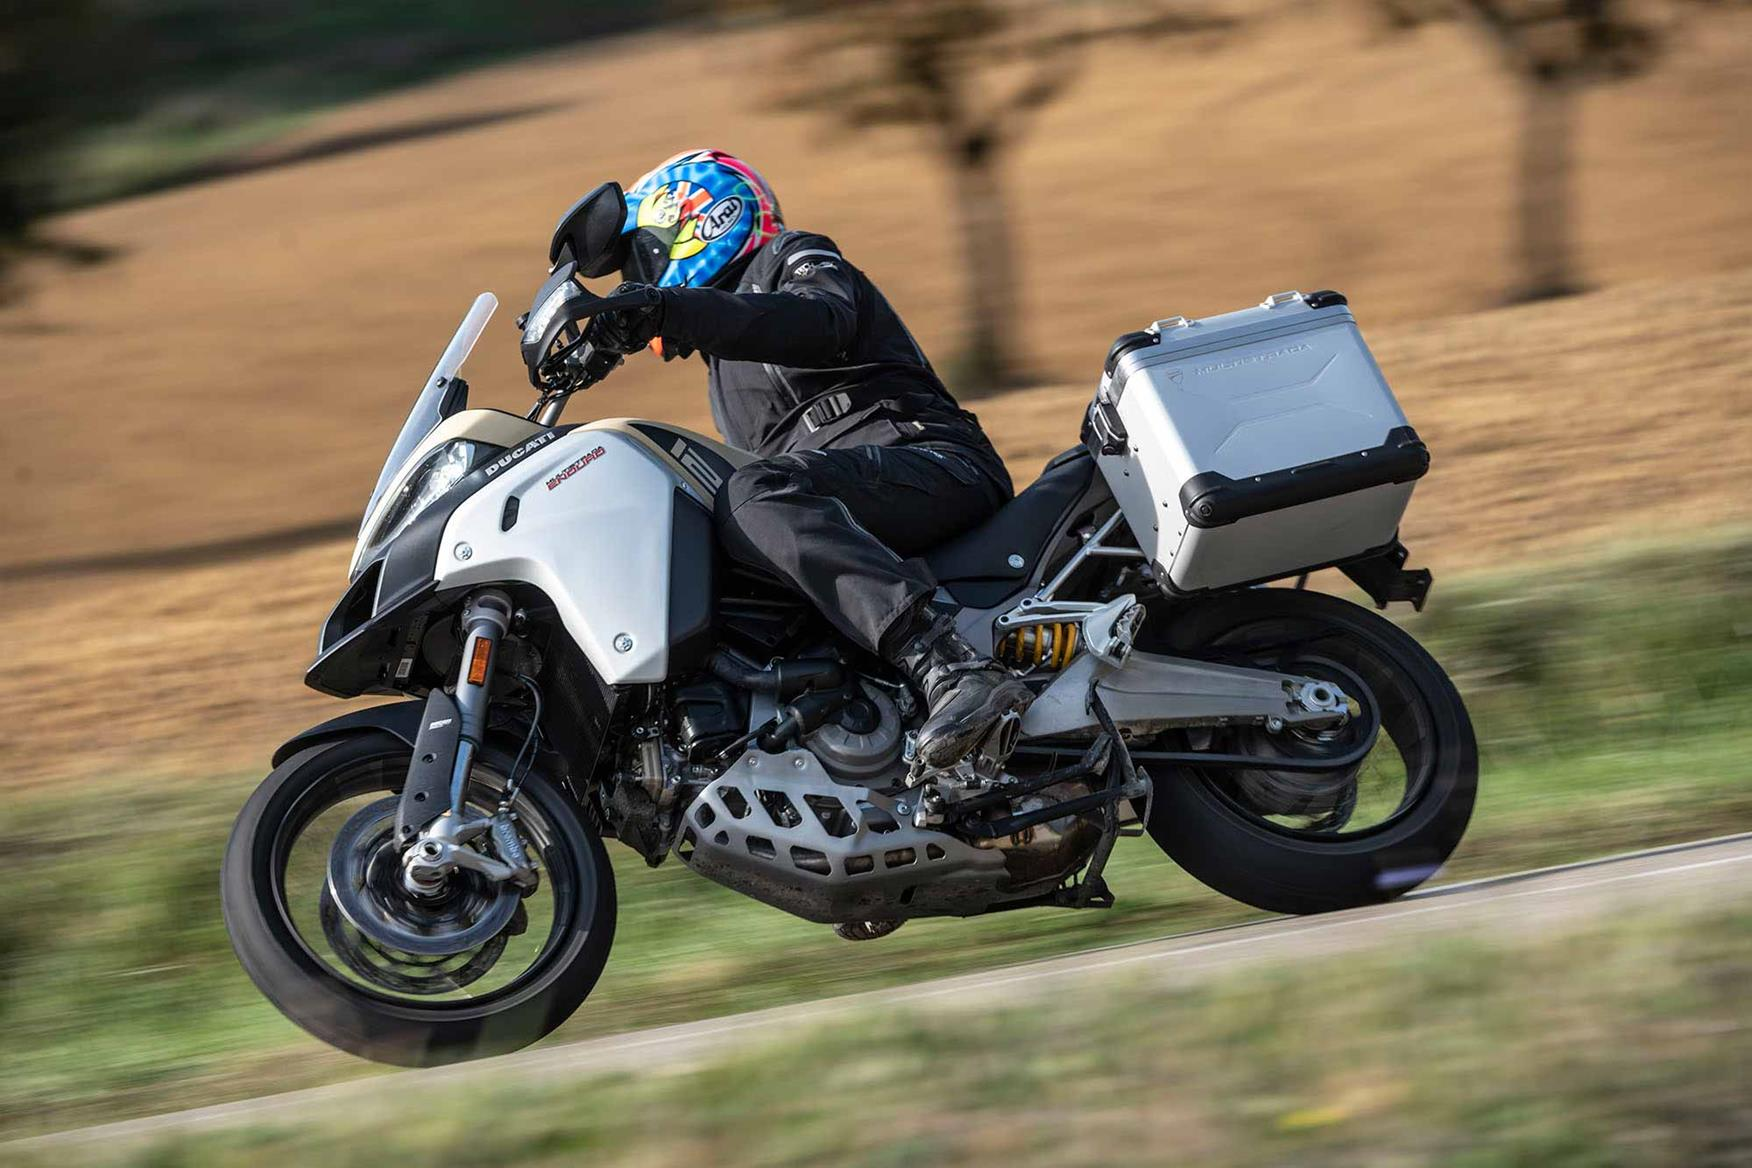 Outstanding Ducati Multistrada 1260 Enduro 2019 On Review Caraccident5 Cool Chair Designs And Ideas Caraccident5Info